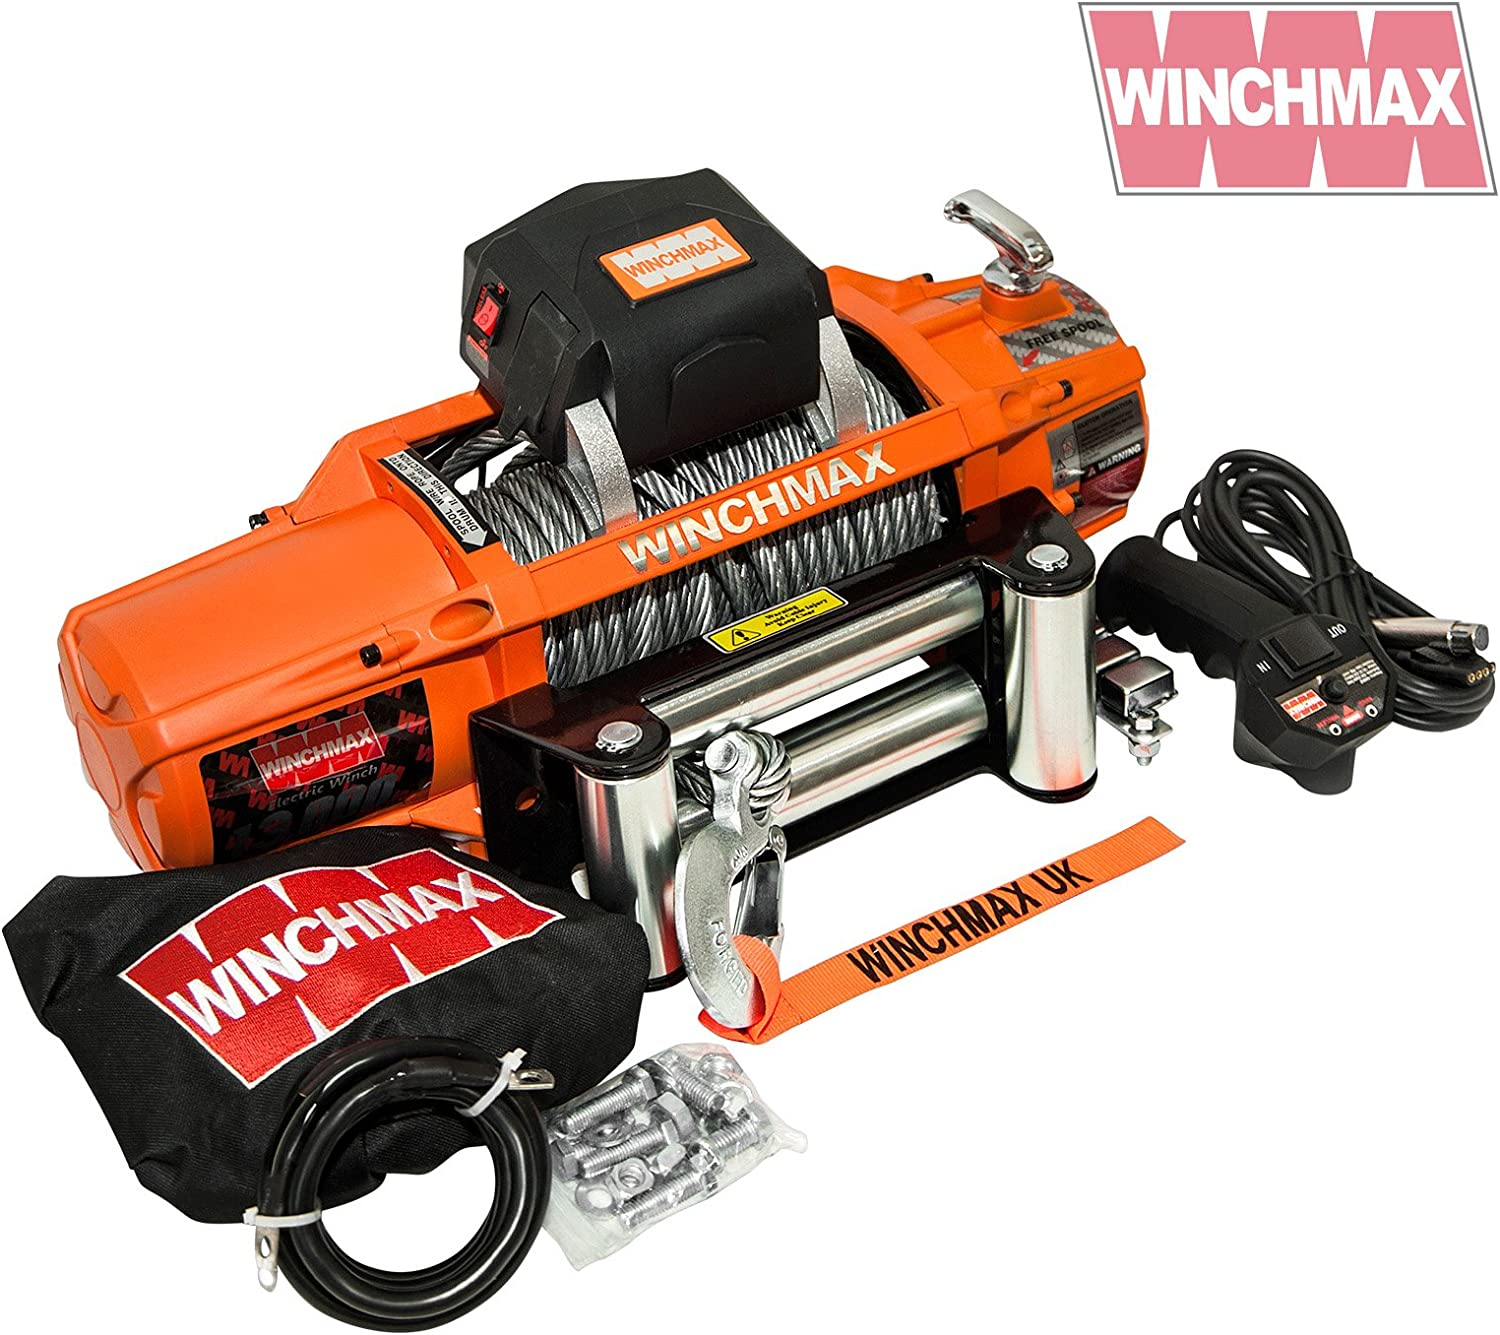 Winchmax ELECTRIC WINCH 12V 4x4//RECOVERY SL 13500 lb BRAND MOUNTING PLATE INC